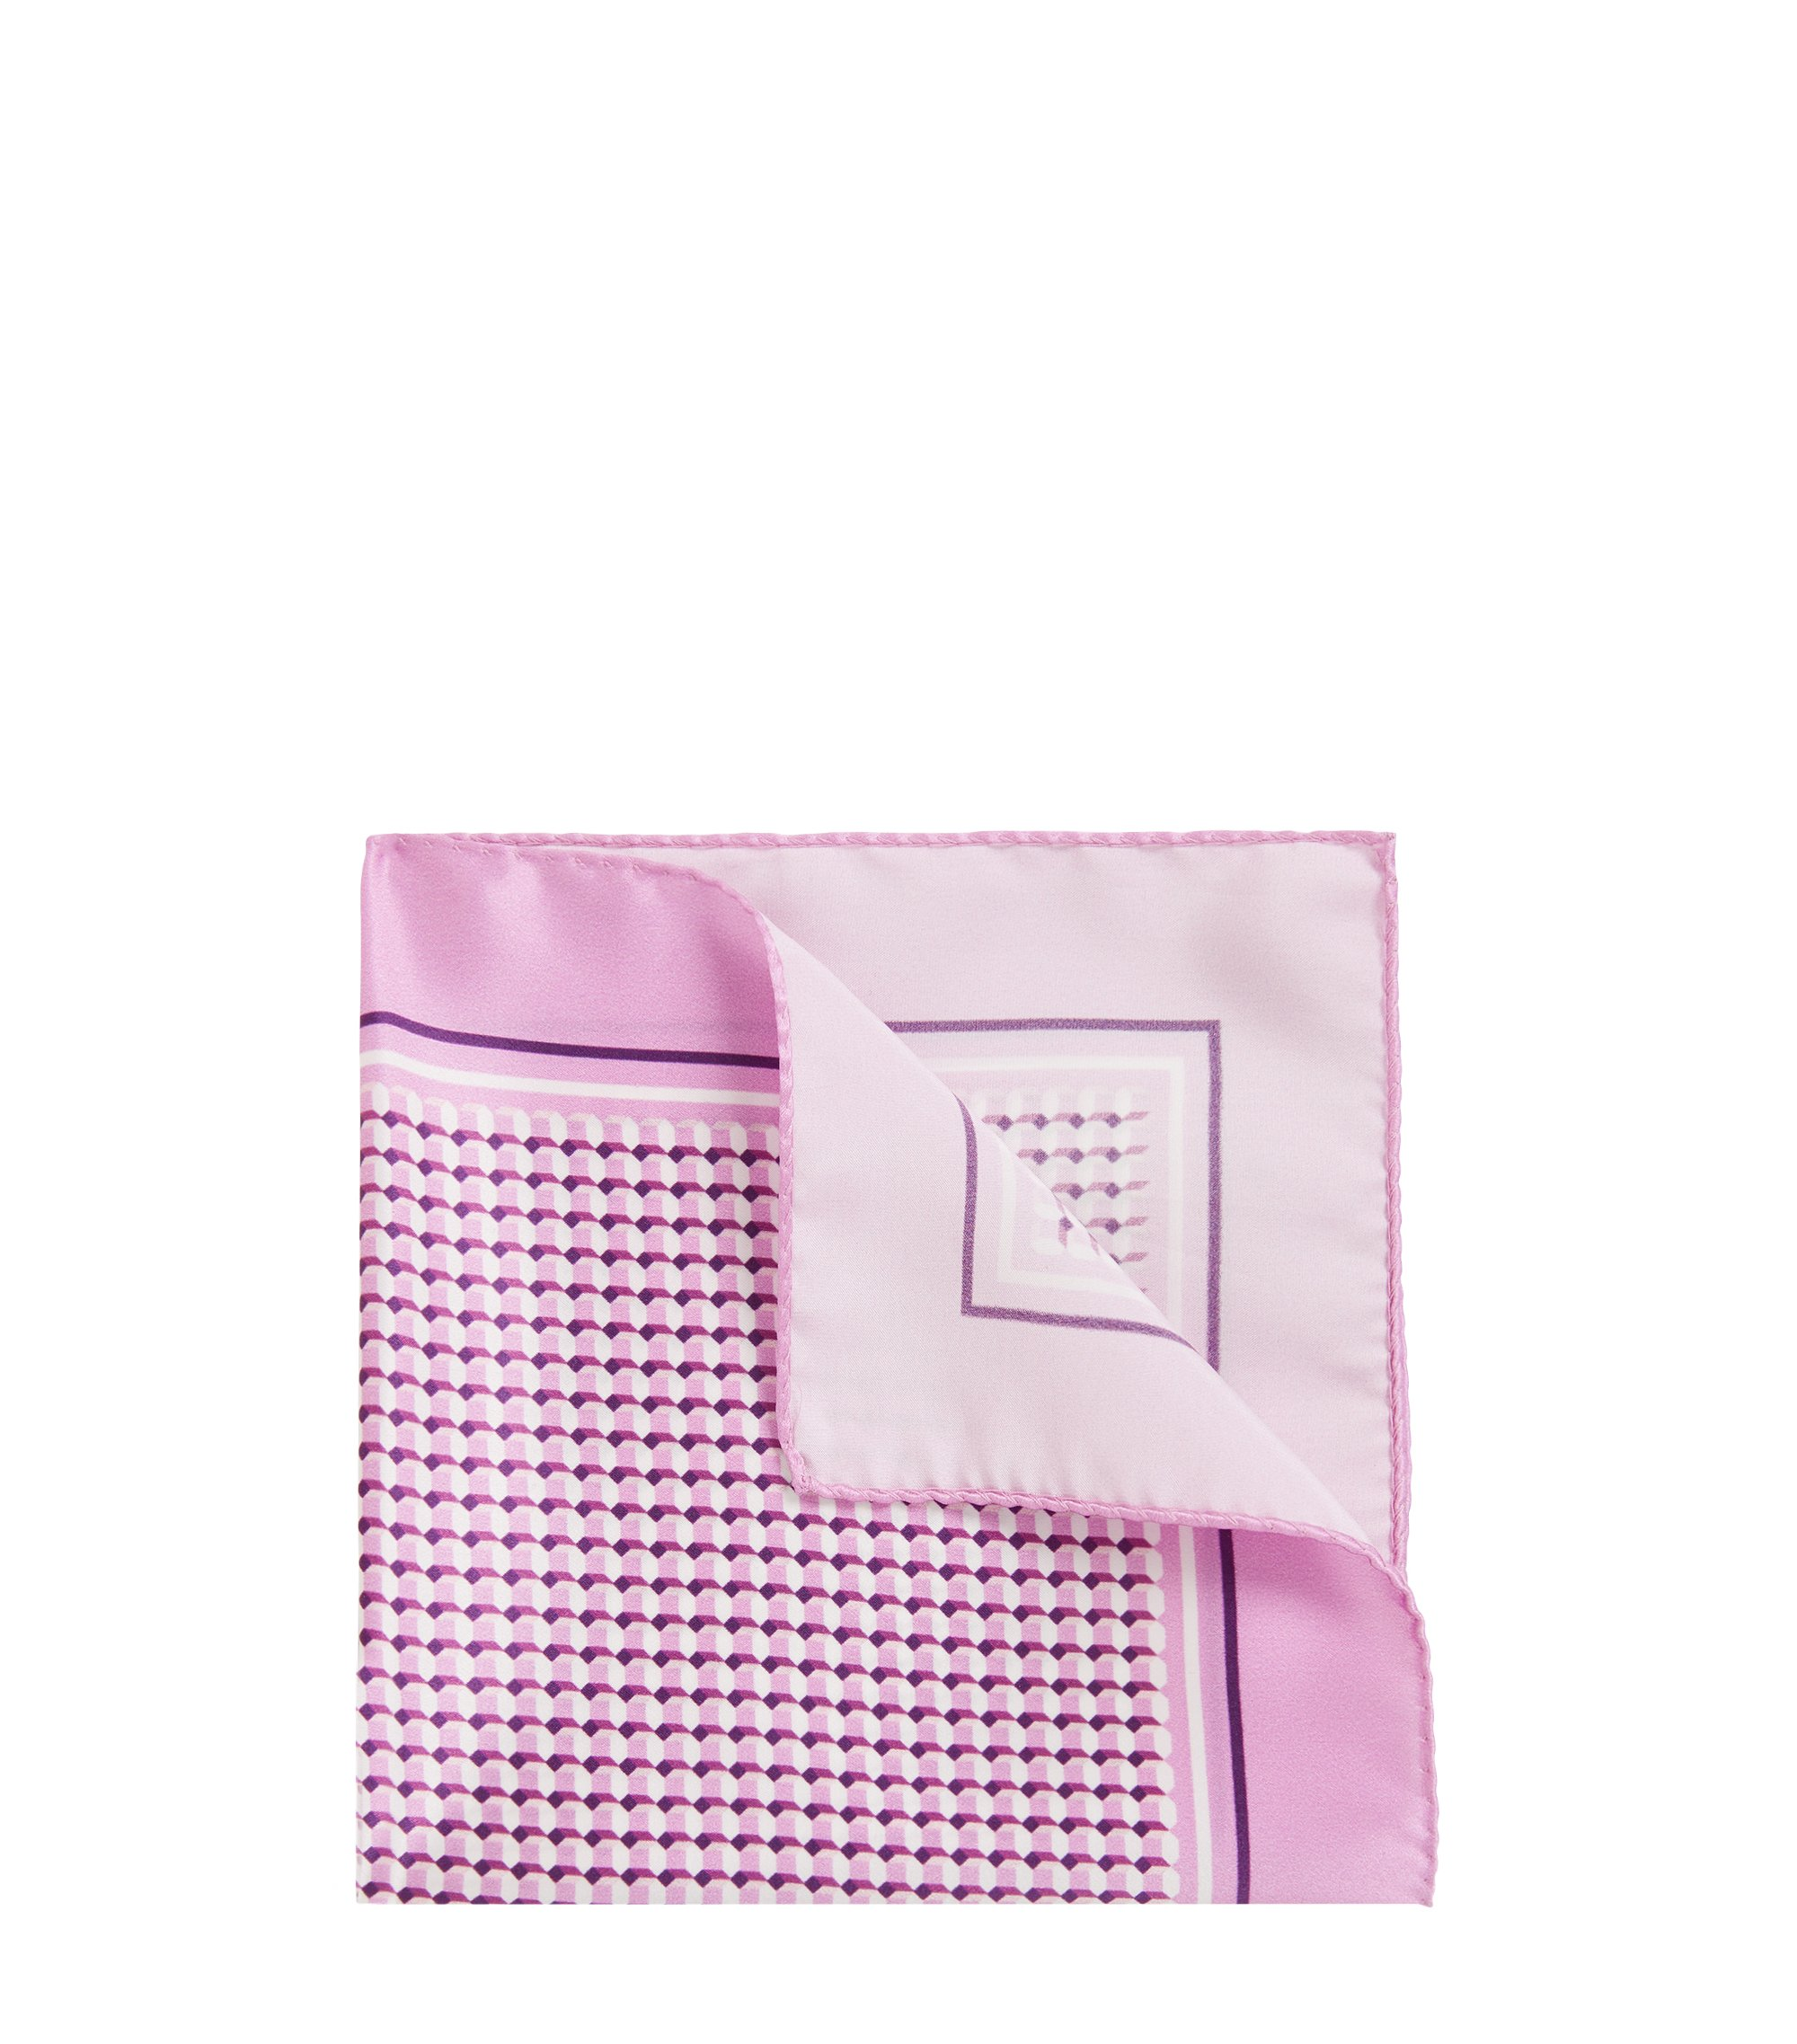 Italian-made silk pocket square with print, light pink